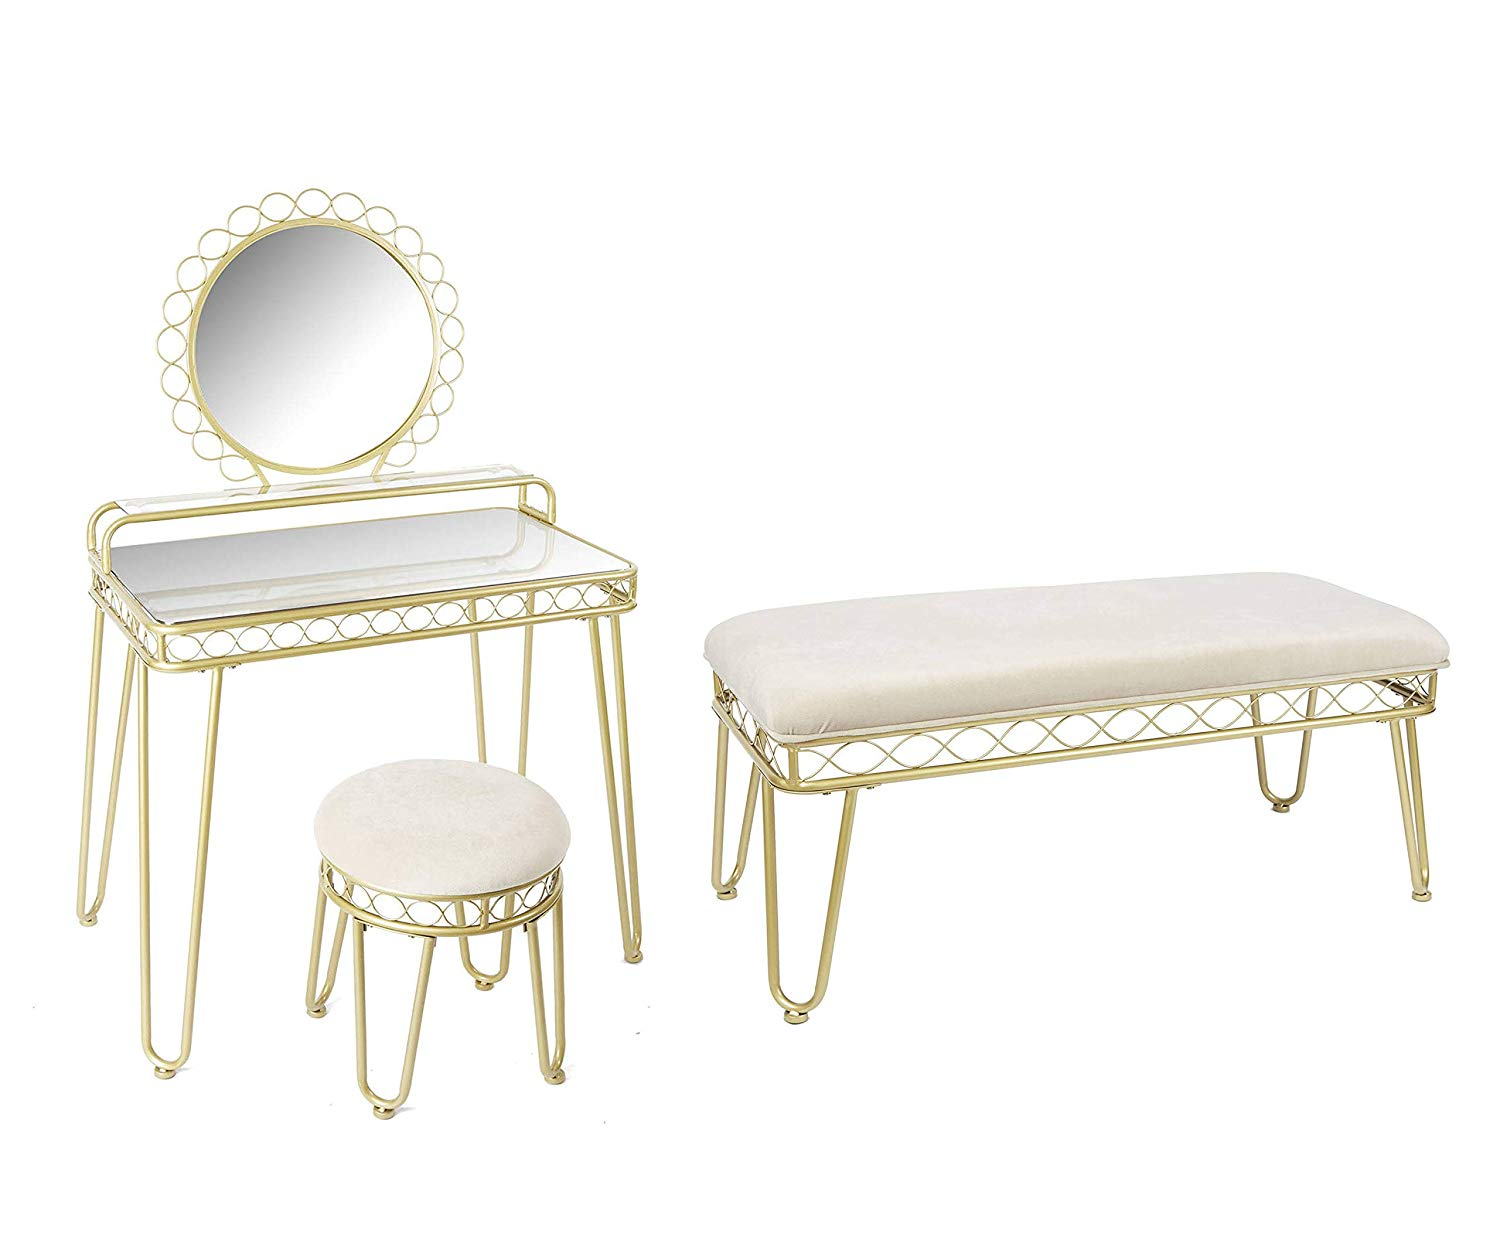 Bench Bundle Mirabella Bedroom Vanity & Stool|